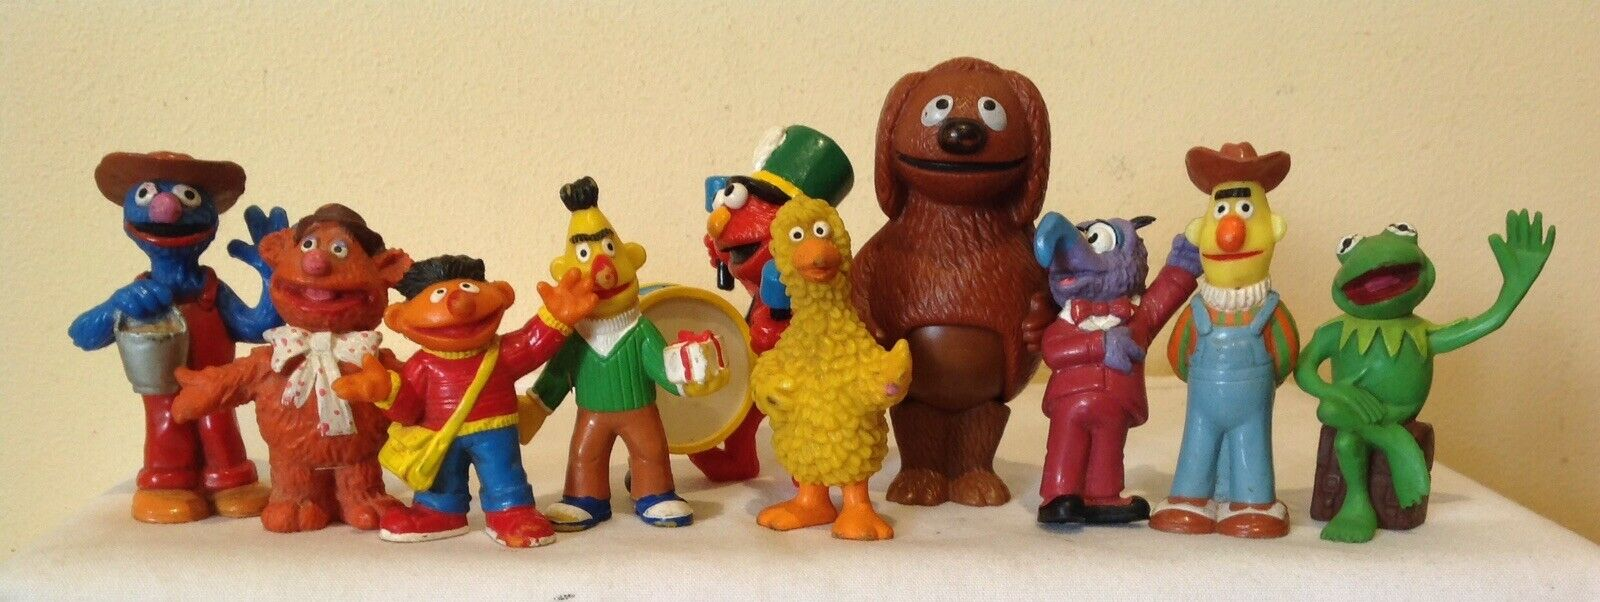 Vintage JIM HENSON MUPPETS figurines by Bully W.Germany